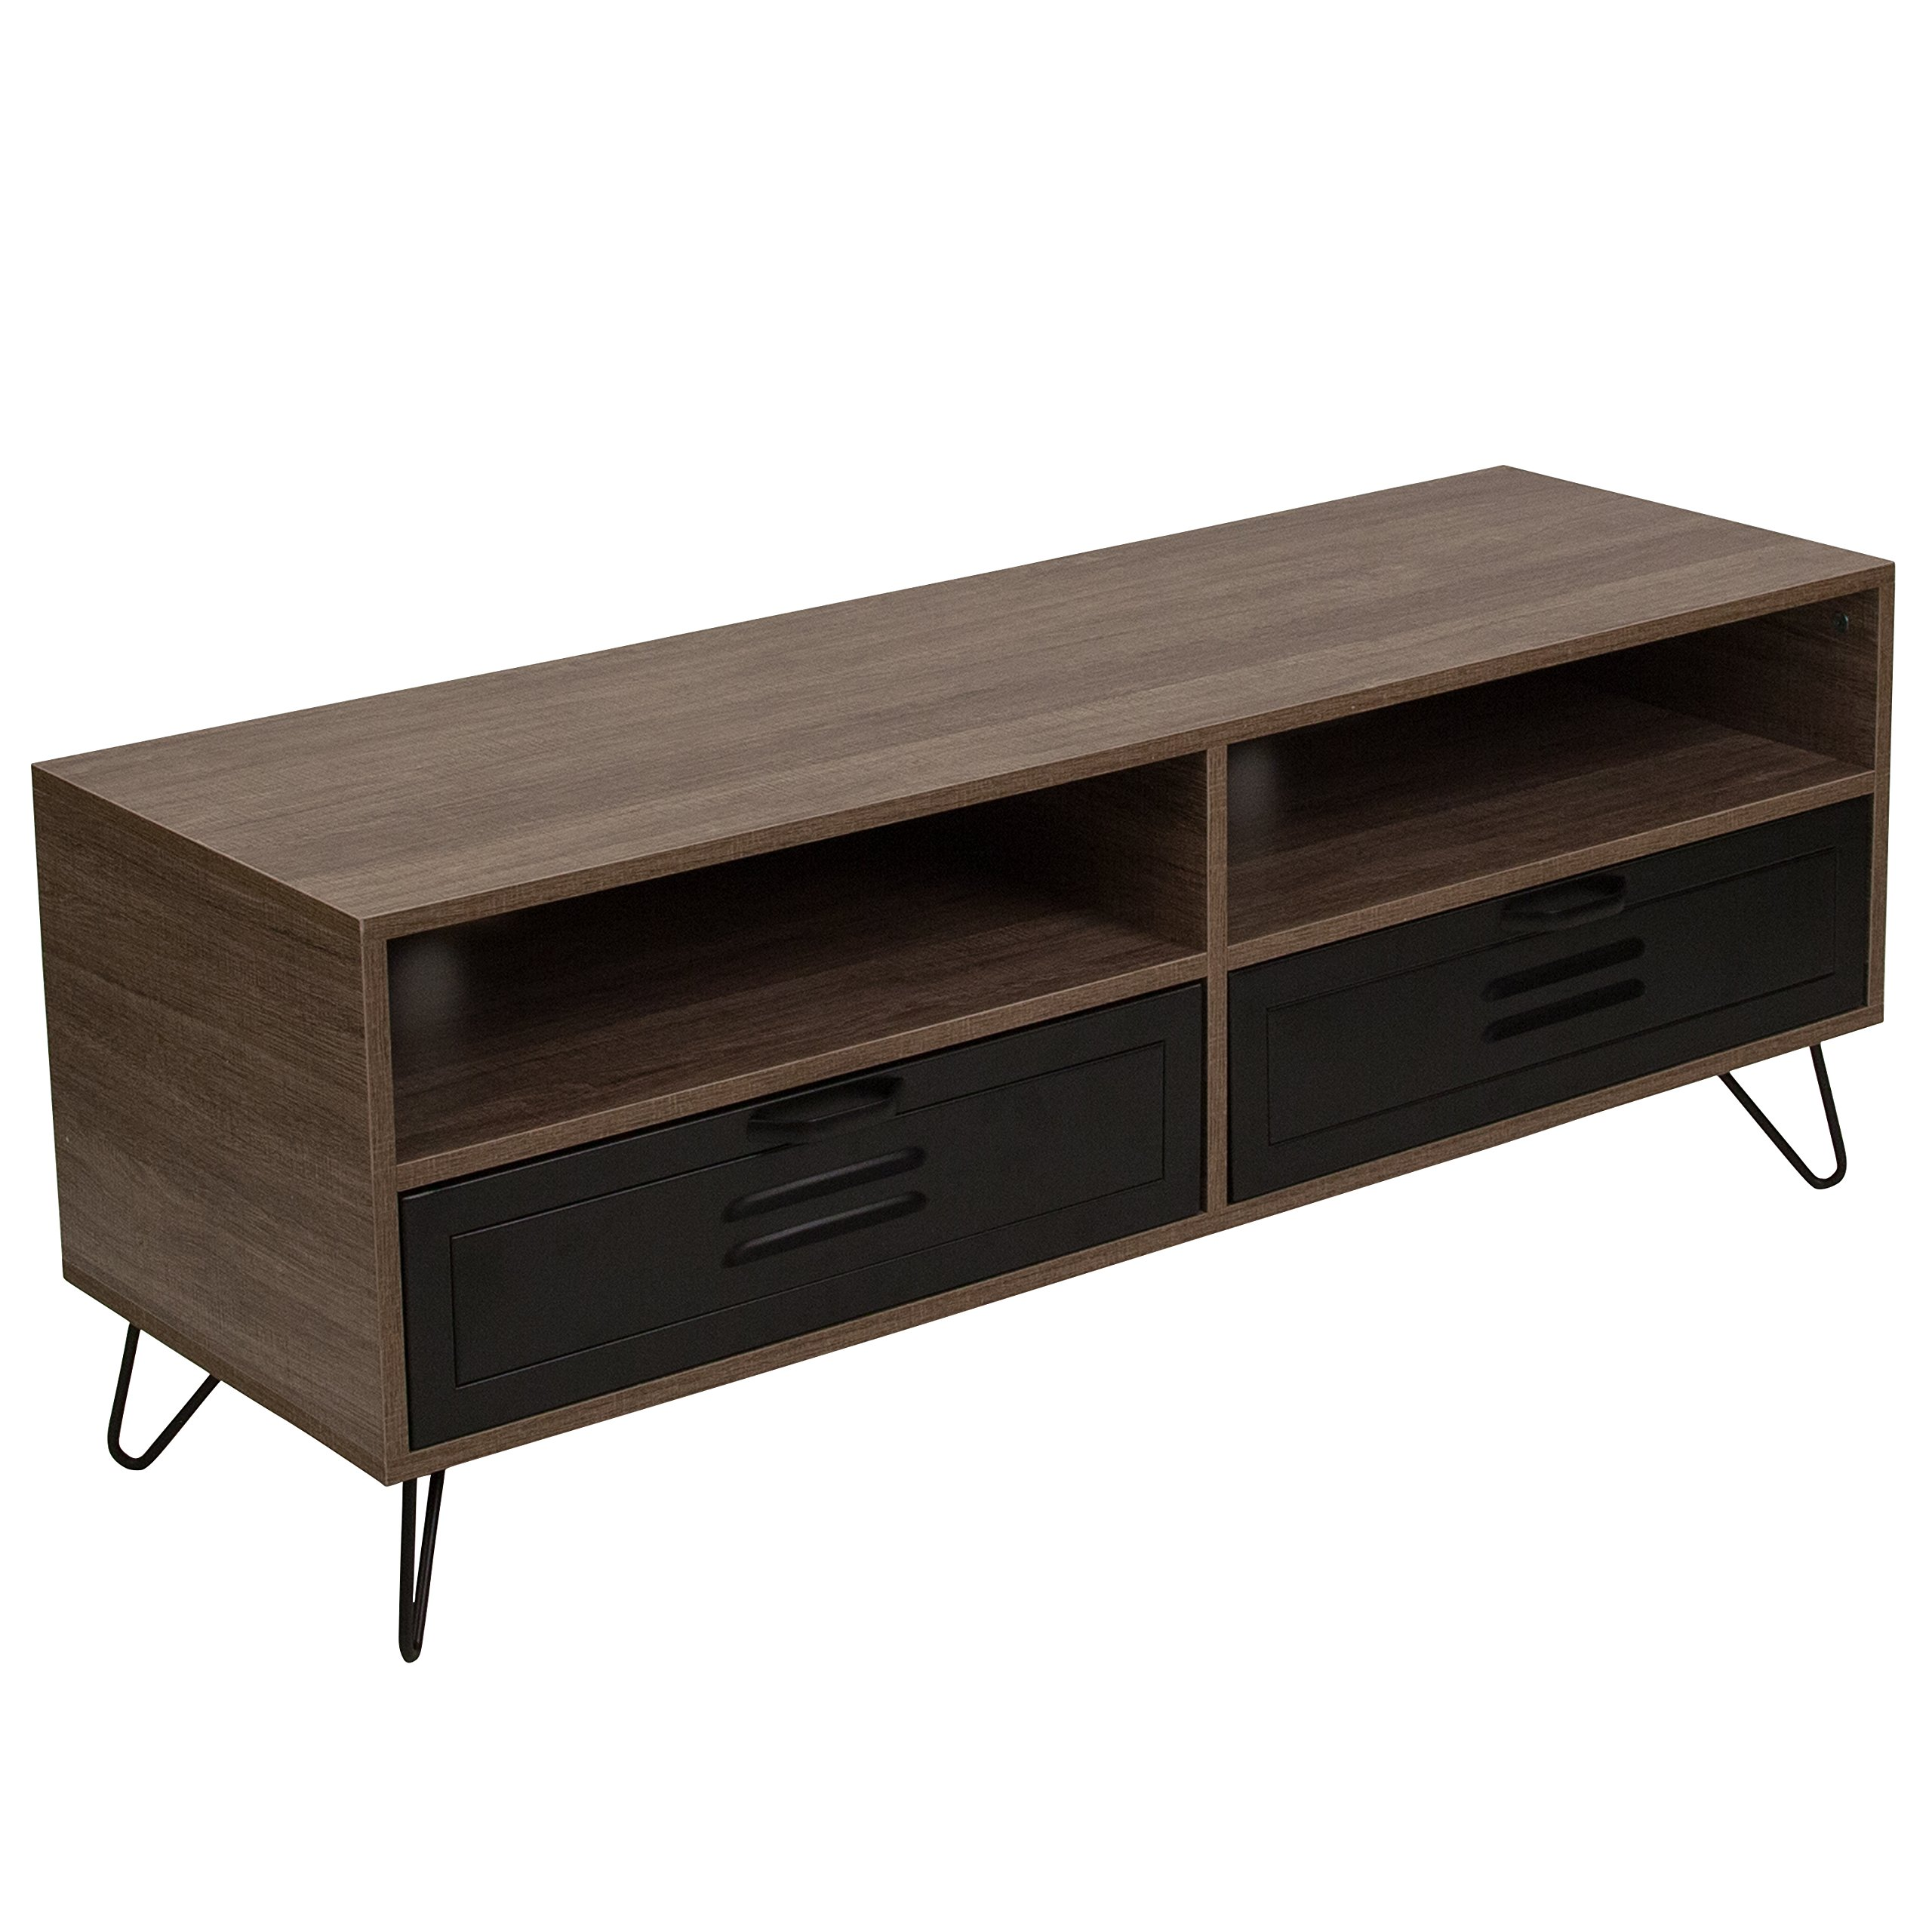 Flash Furniture Woodridge Collection Rustic Wood Grain Finish TV Stand with Metal Drawers and Black Metal Legs by Flash Furniture